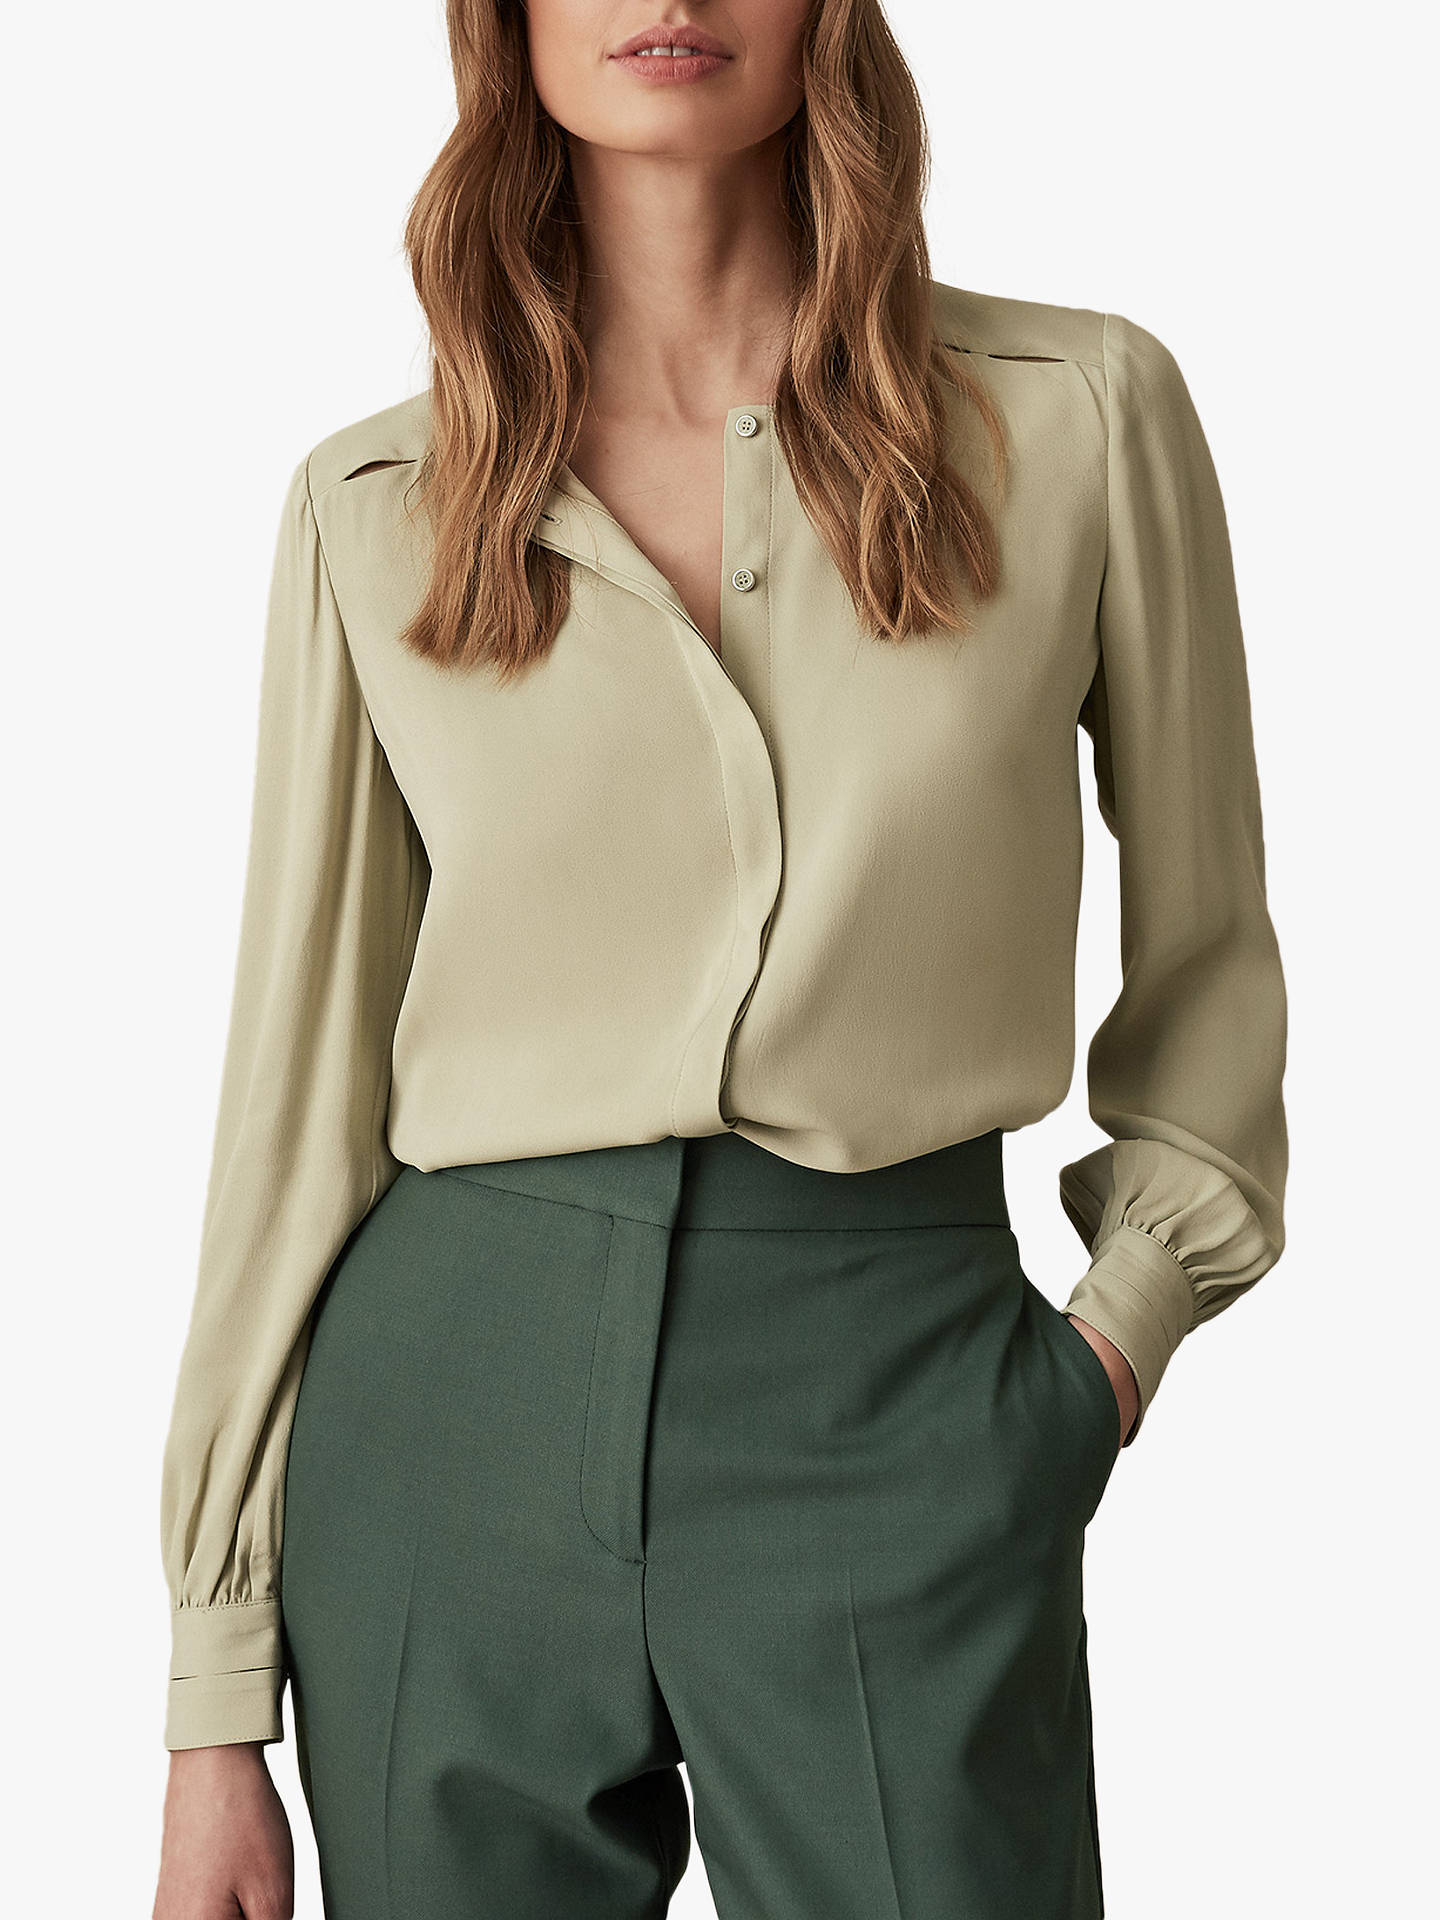 705e5be35 Buy Reiss Noya Cut Out Detail Blouse